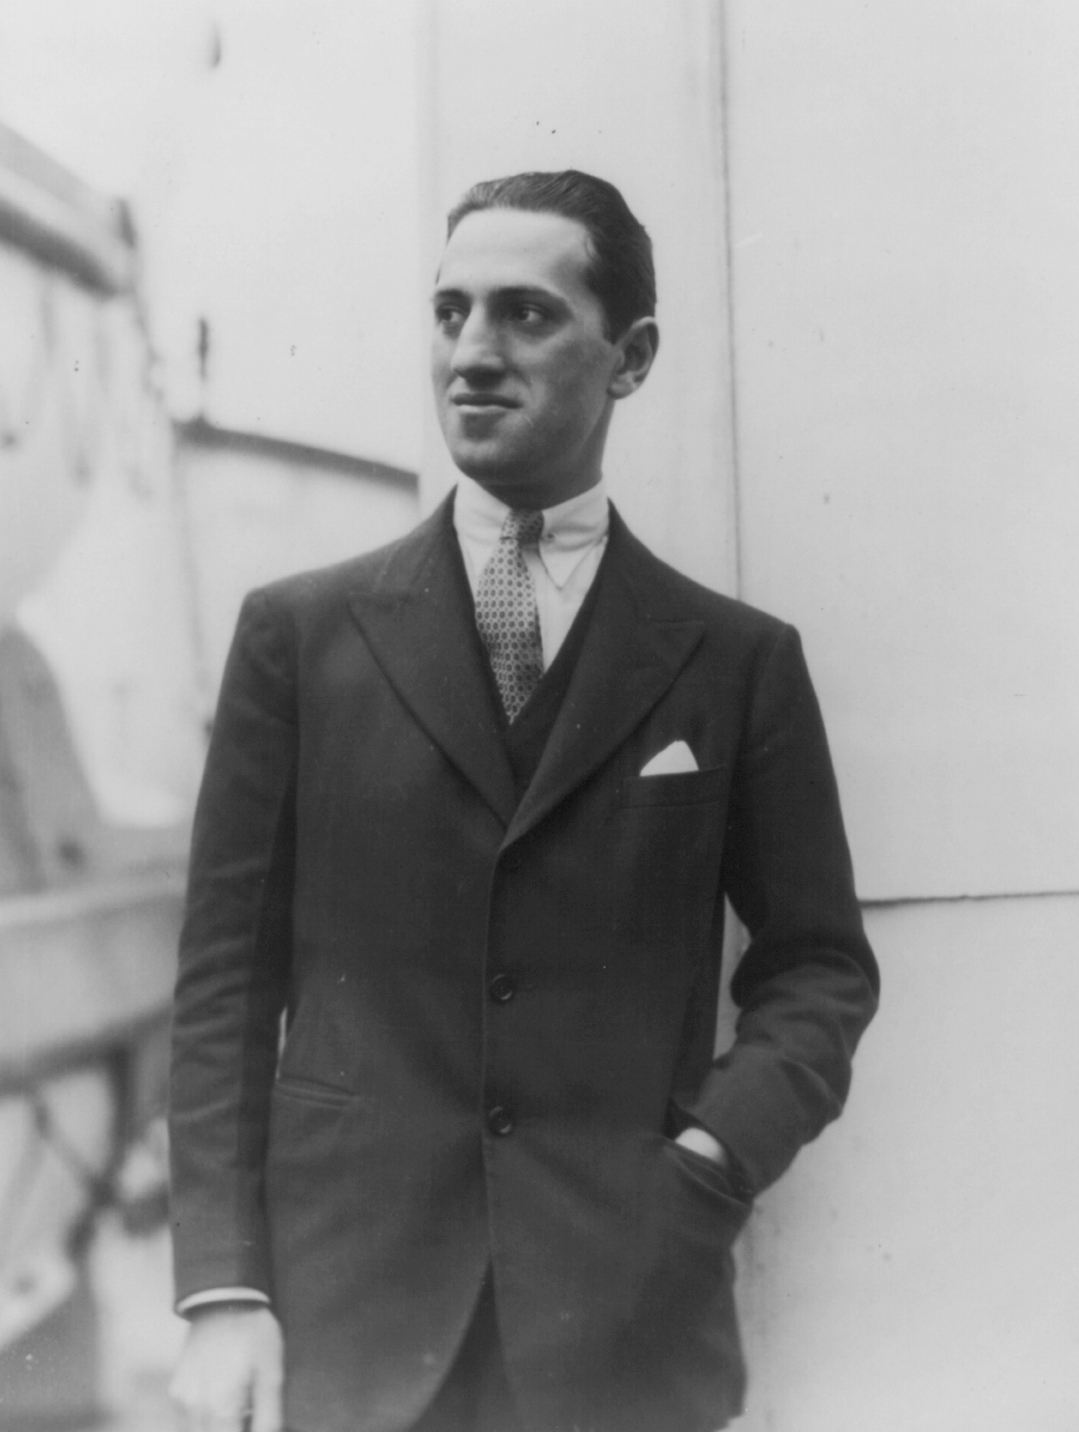 george gershwin George gershwin (september 26, 1898 – july 11, 1937) was an american composer and pianist gershwin's compositions spanned both popular and classical genres, and his most popular melodies are widely known.